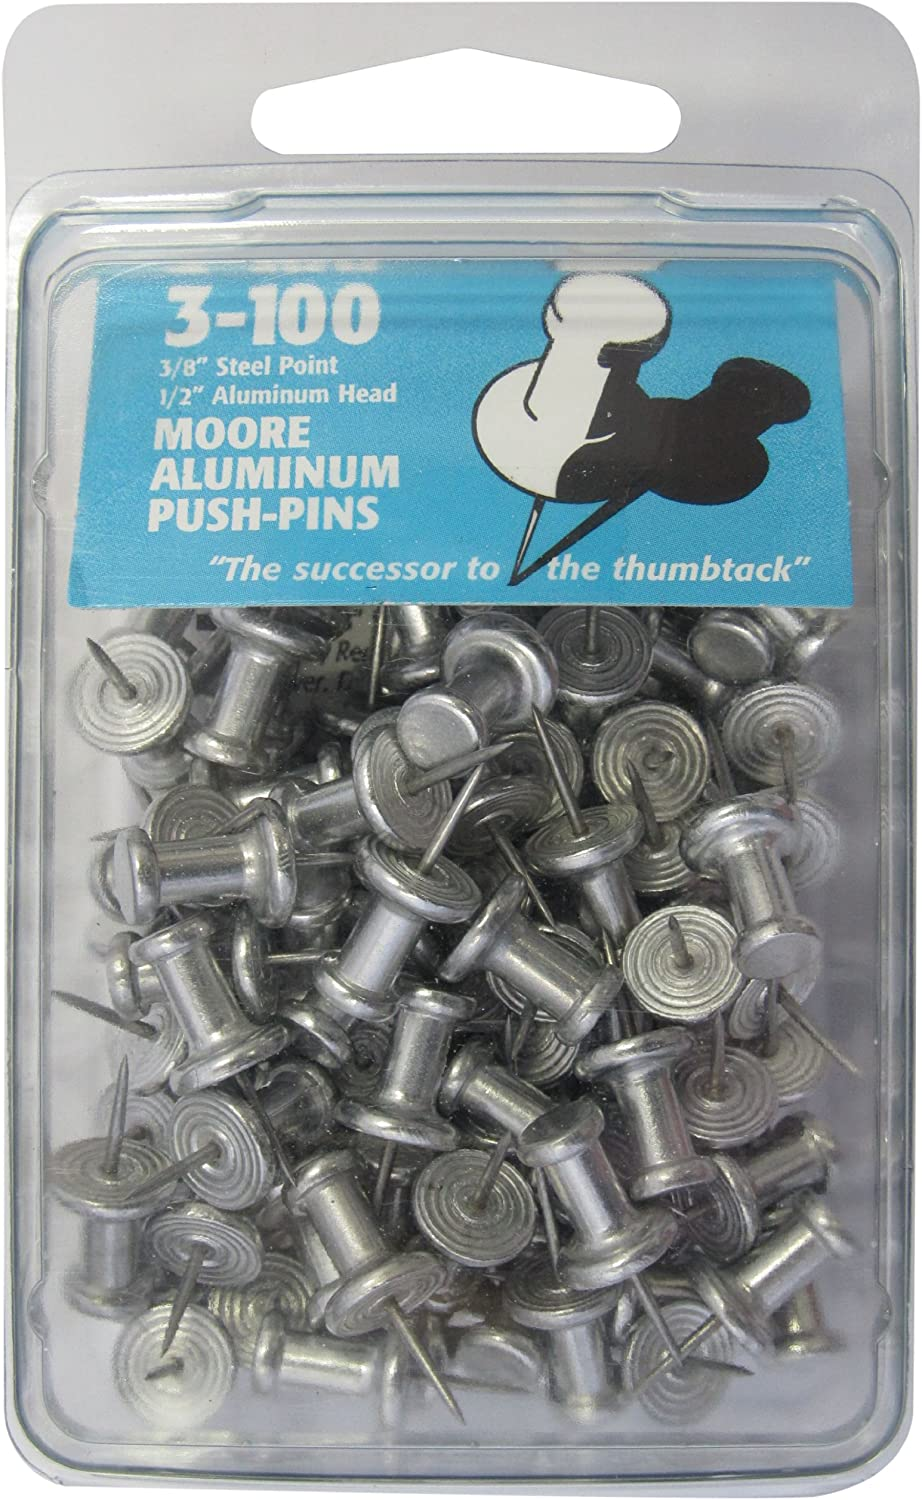 Moore Push-Pin Aluminum Push-Pins 4-100 4-100